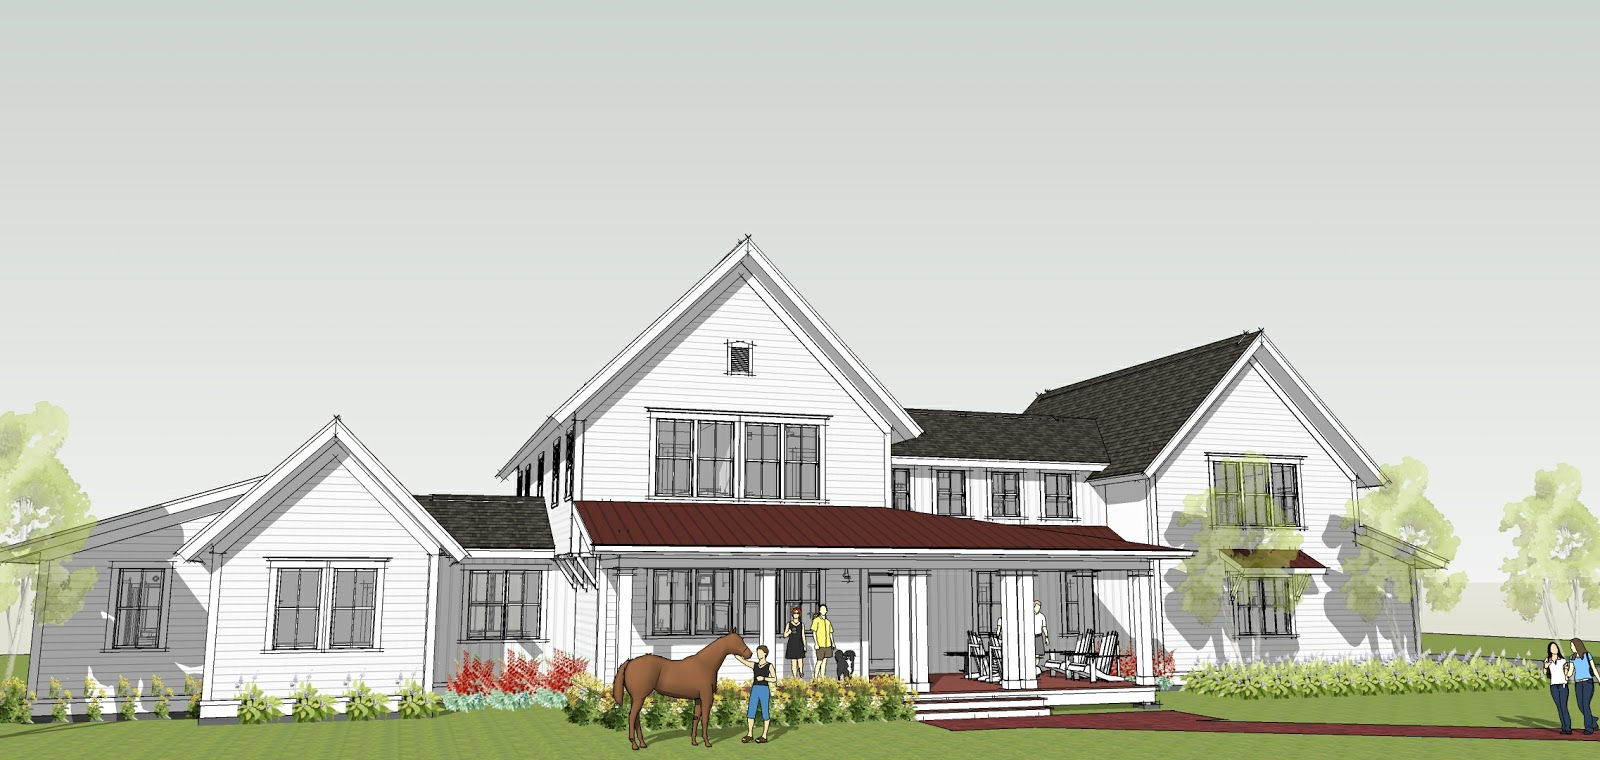 Modern farmhouse by ron brenner architects Modern farmhouse house plans